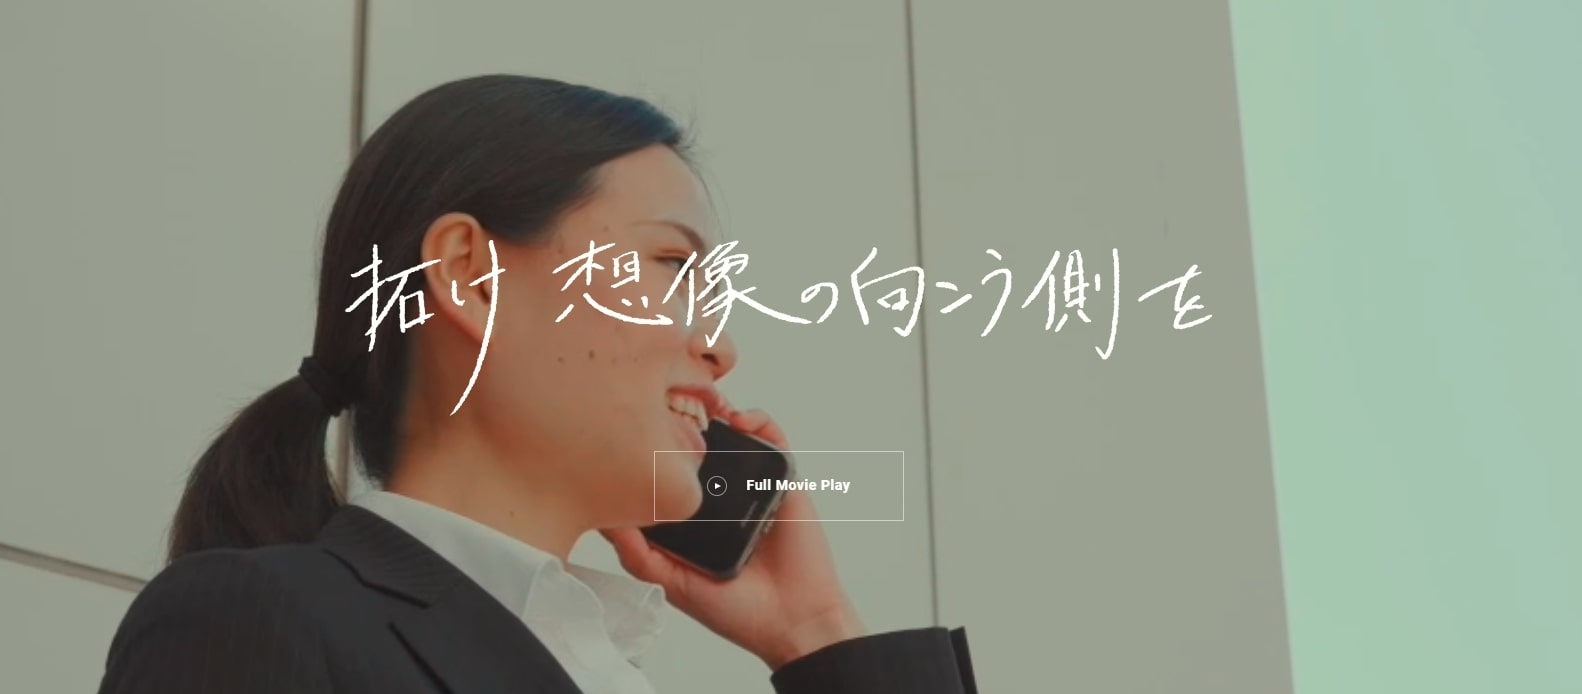 https://www.chibabank.co.jp/job/index.html